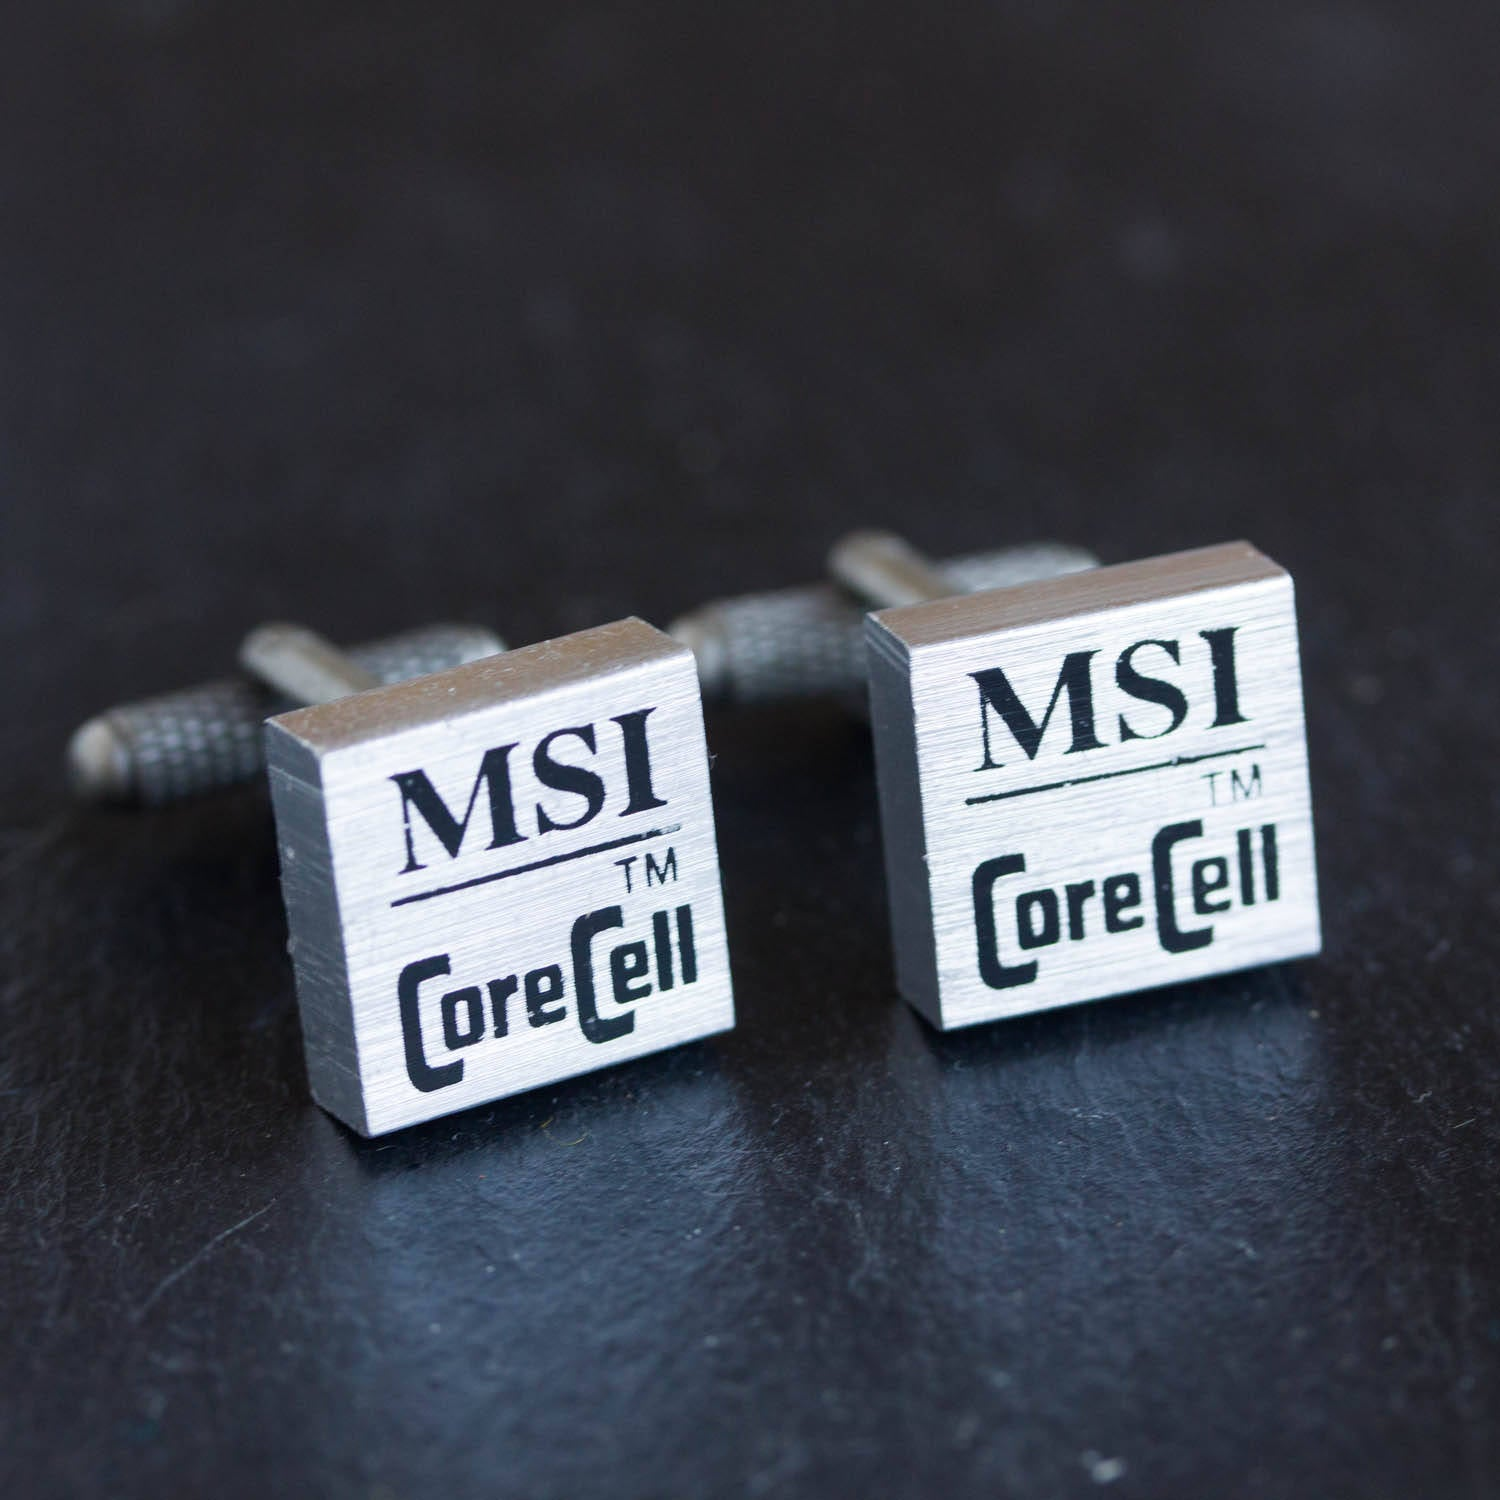 Recycled computer cufflinks, MSI radiator cufflinks